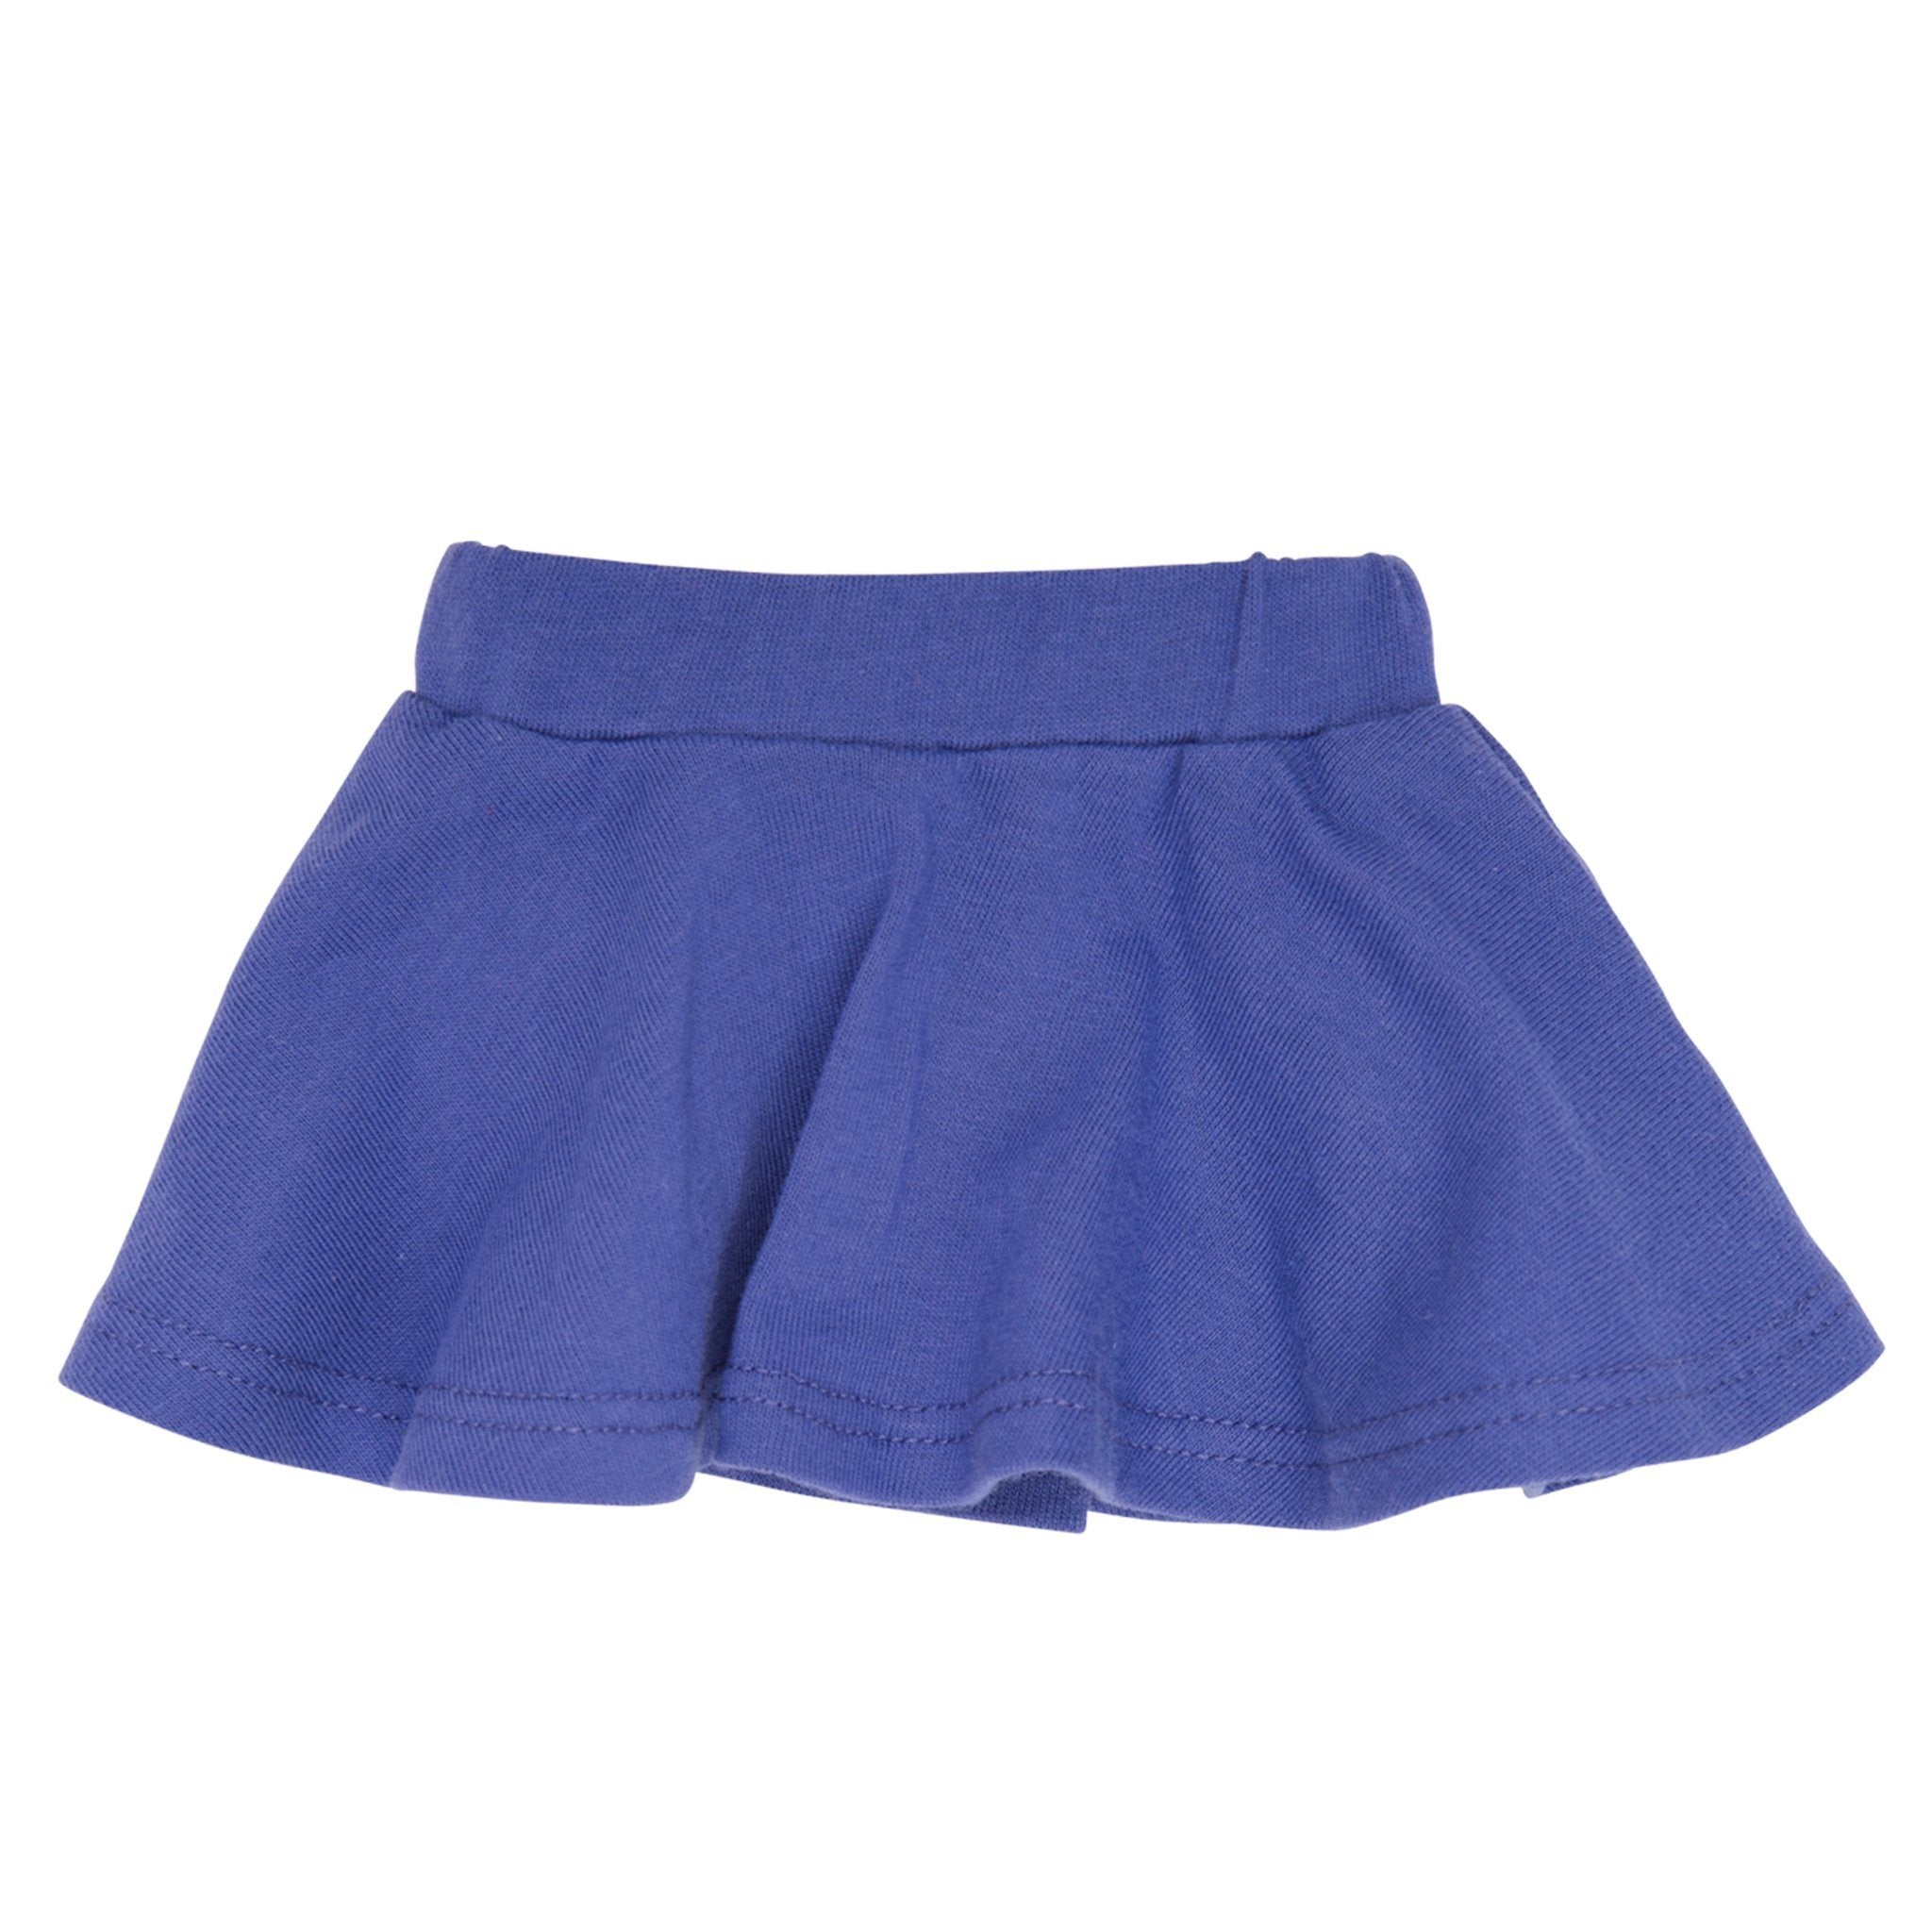 Campus Collection purple skirt fits all 18 inch dolls.